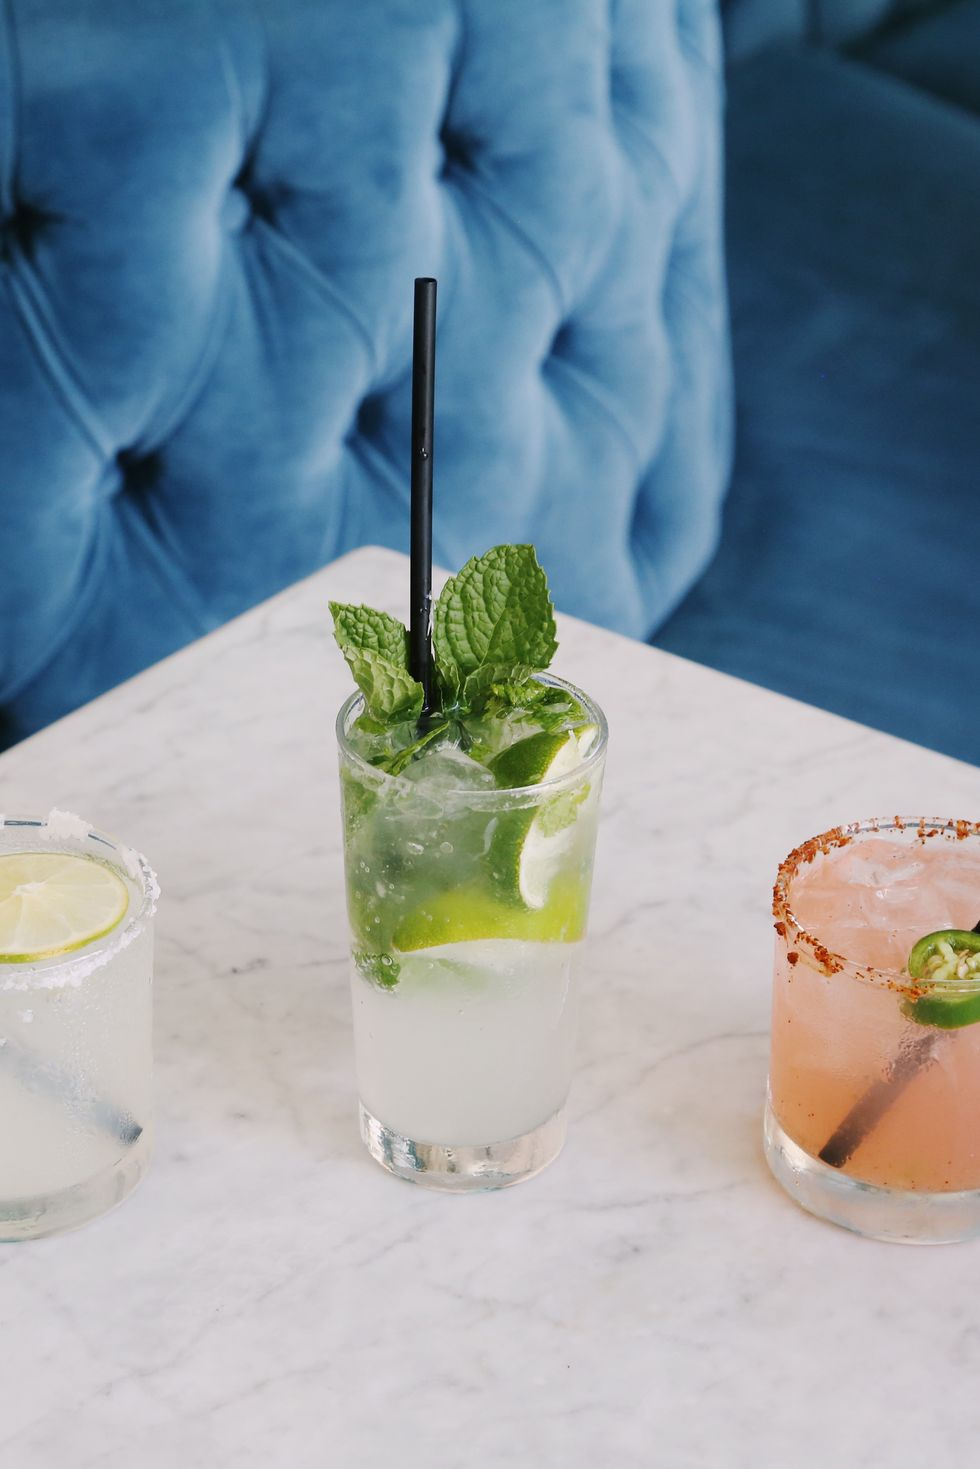 The 5 Best Cocktails to Celebrate Cinco de Mayo Beyond a Margarita